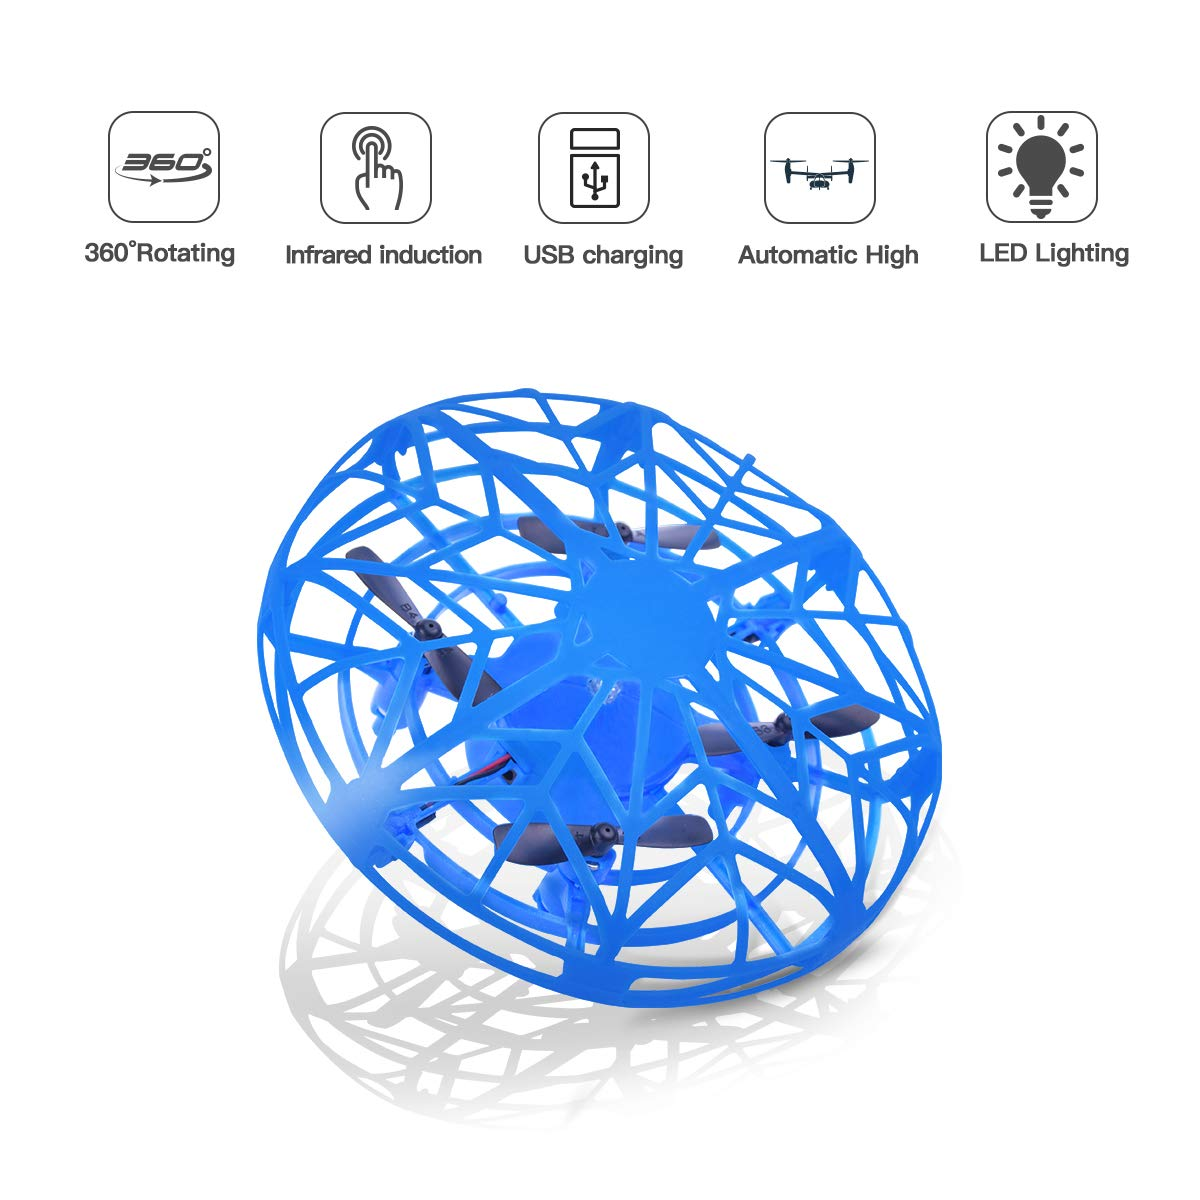 LEEHUR Mini Drones Flying Ball Toy for Kids UFO Quadcopter RC Helicopter Hand Controlled Obstacle Avoidance 360 Rotation Interactive Infrared Induction Flashing LED Lights by LEEHUR